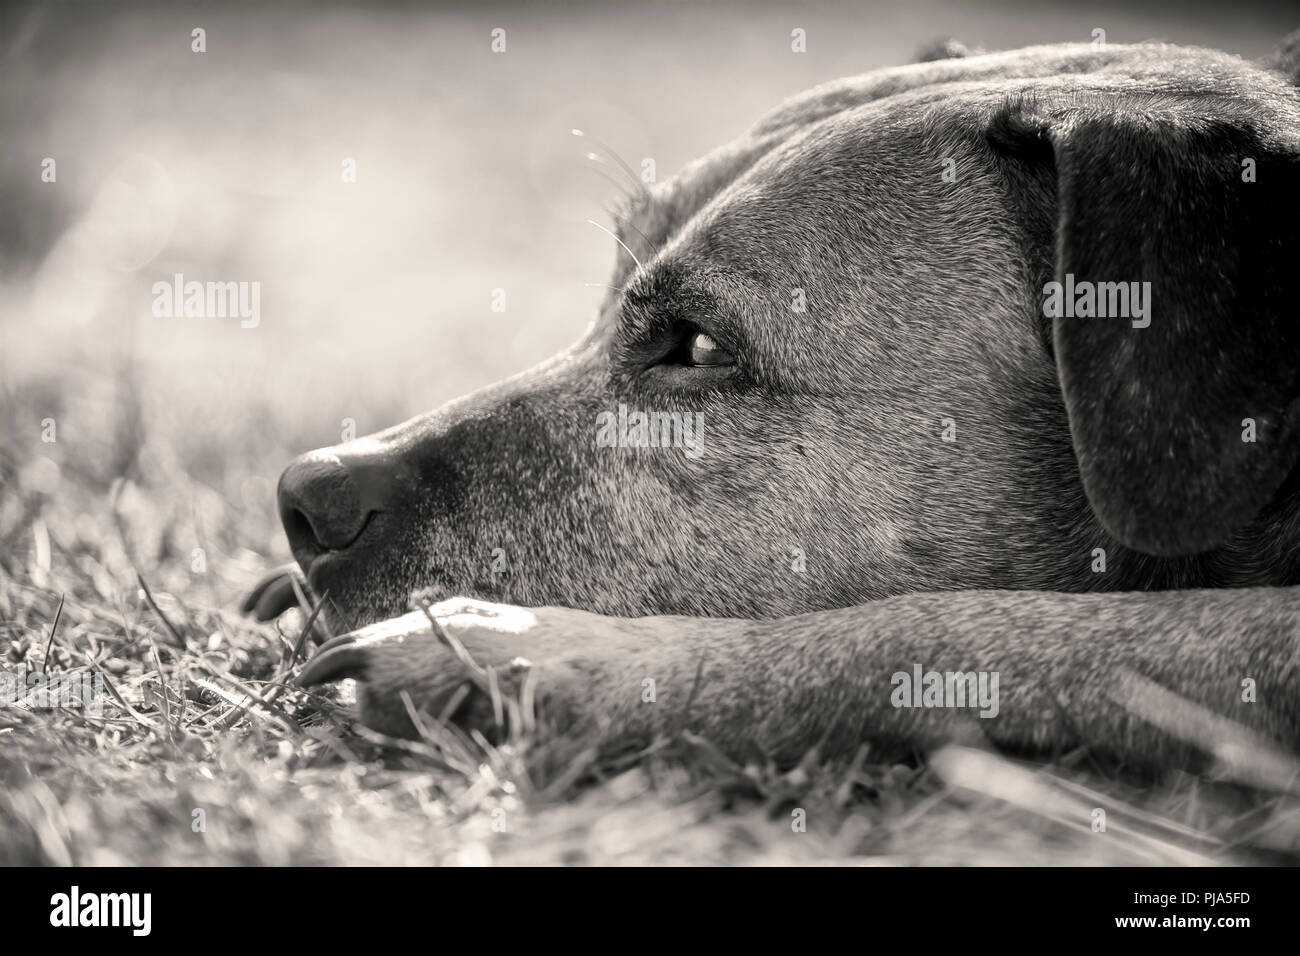 Closeup black and white headshot of a staffordshire bull terrier - Stock Image